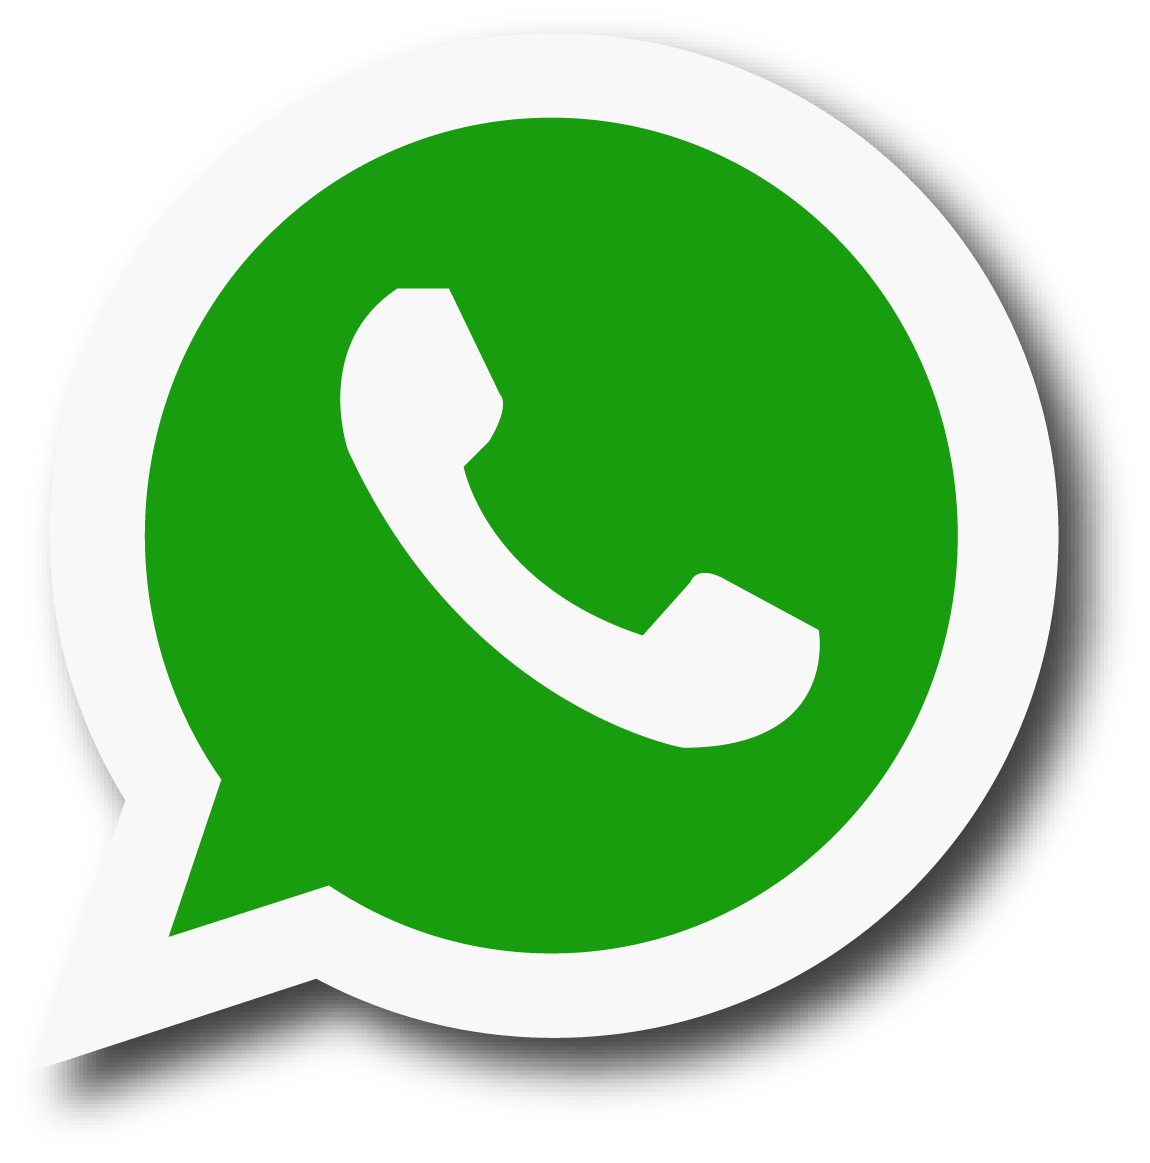 How to use WhatsApp on the Web/Desktop